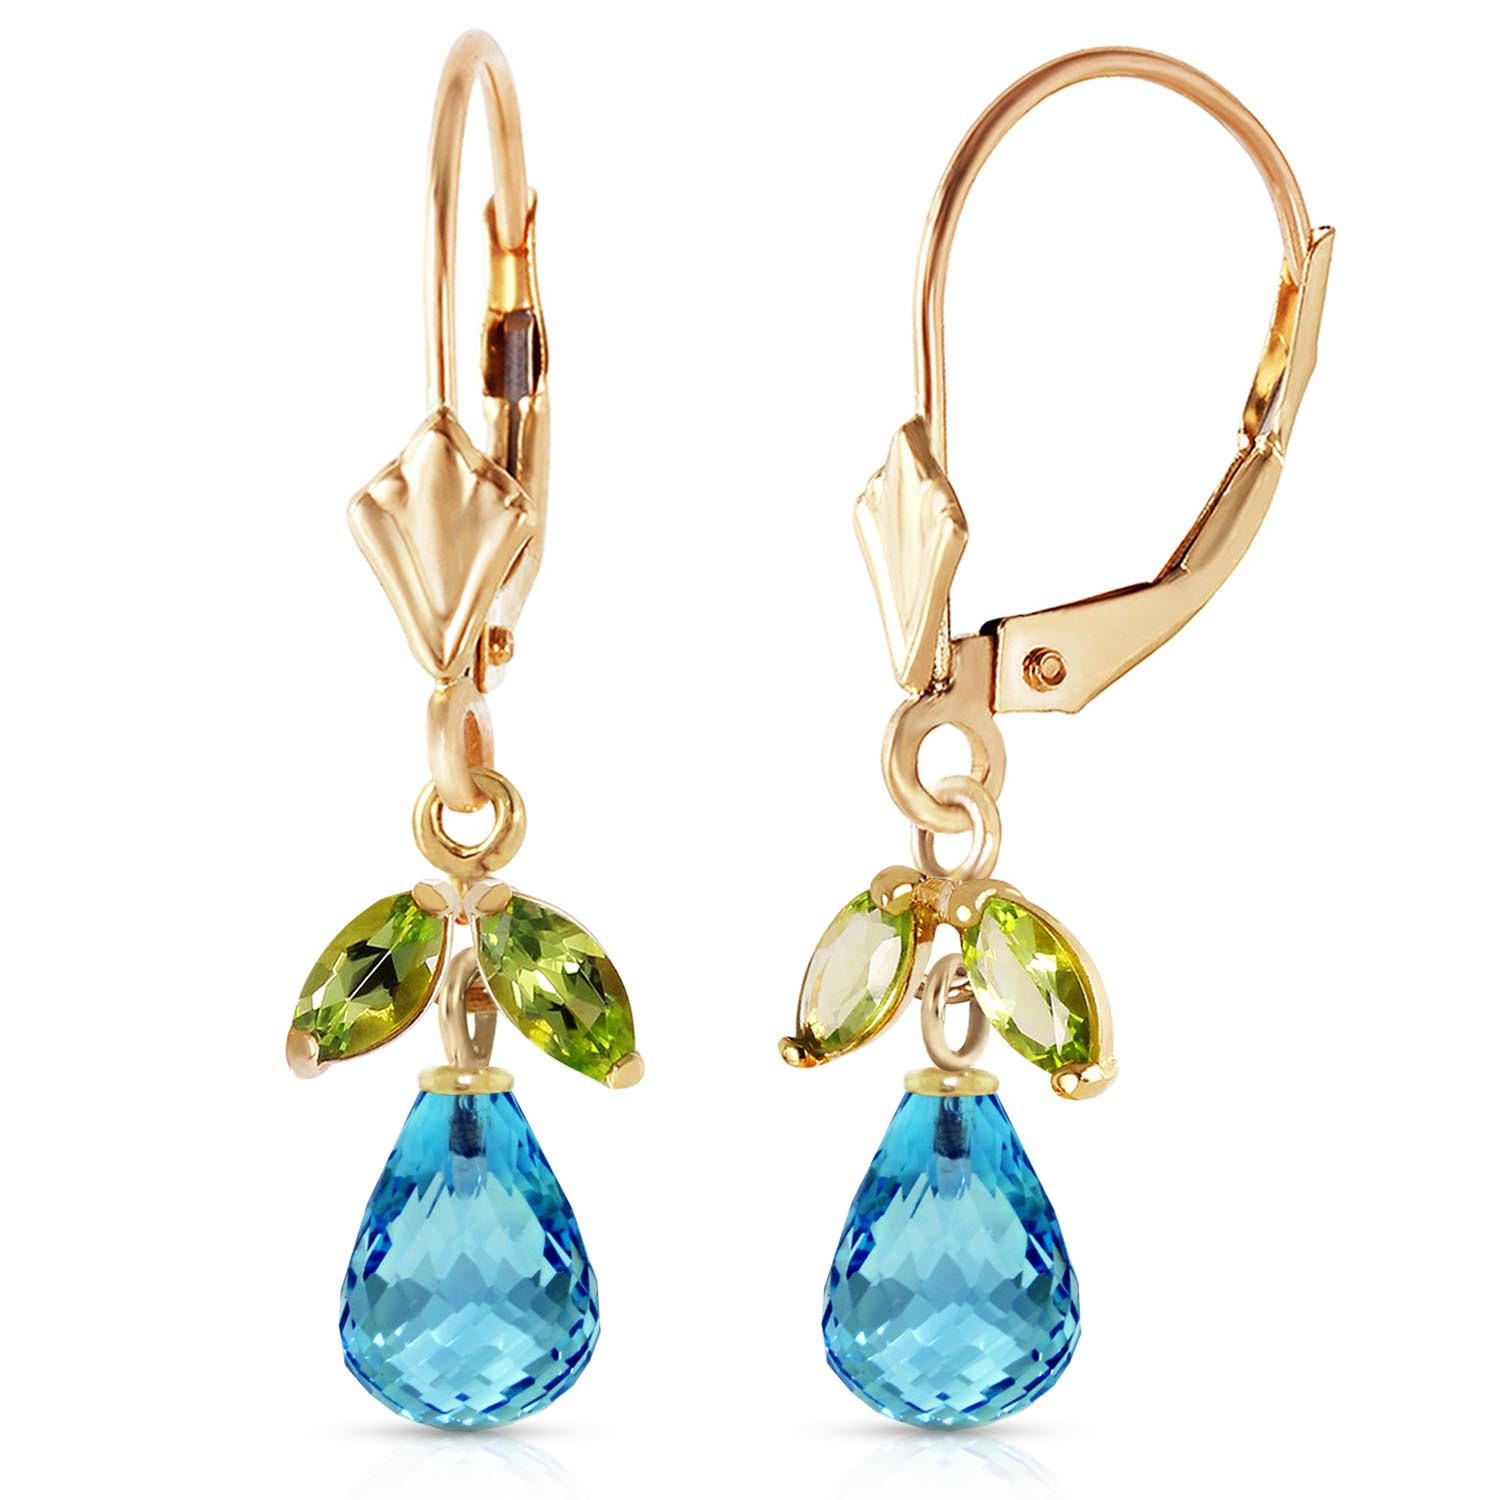 Blue Topaz & Peridot Snowdrop Earrings in 9ct Gold